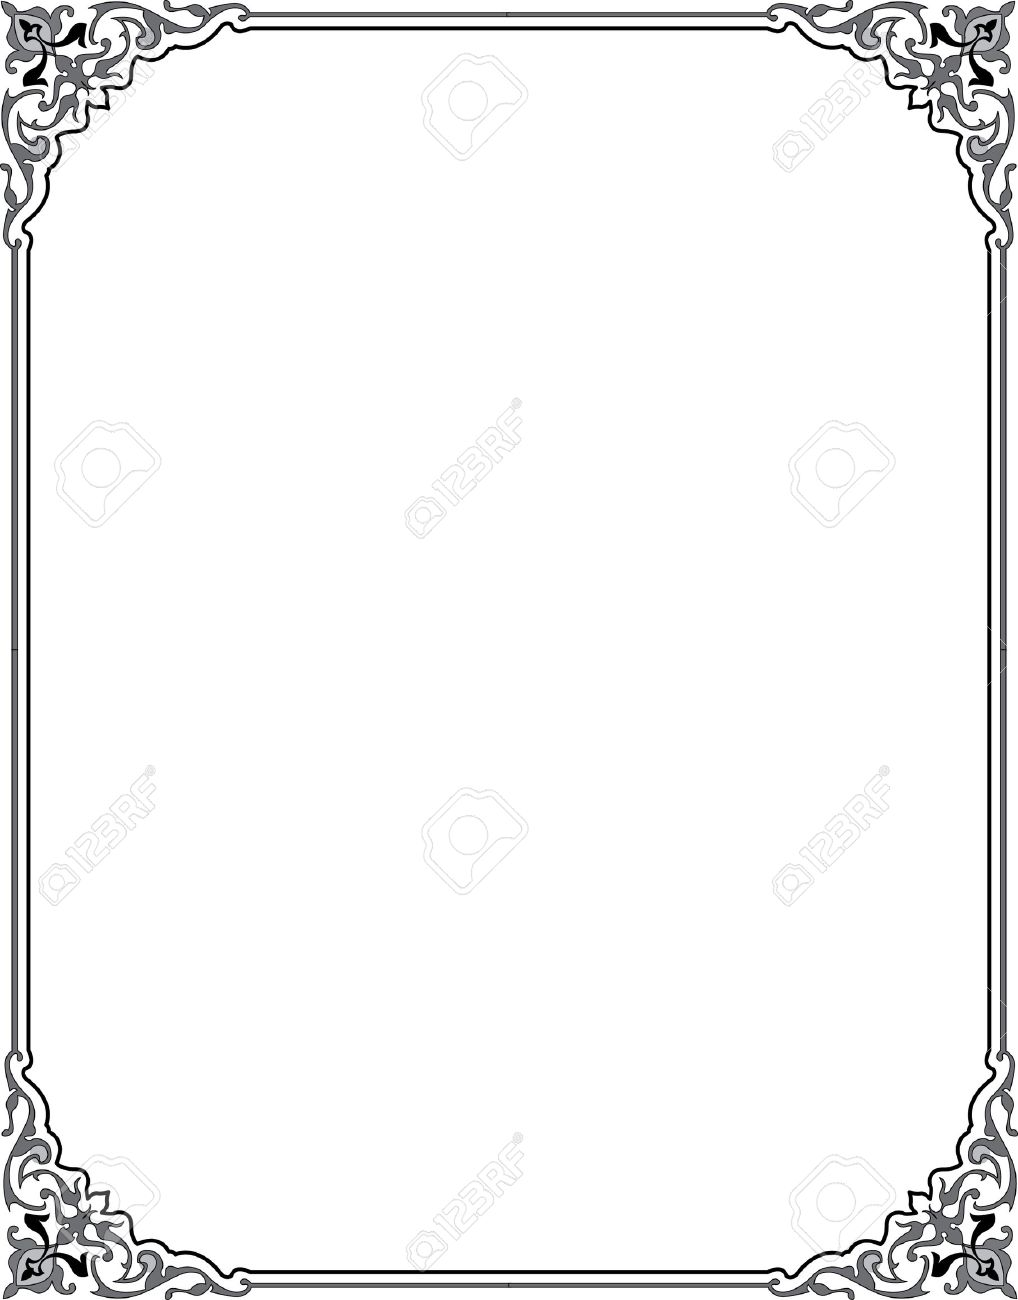 Damask Flourish Border Frame Royalty Free Cliparts, Vectors, And ...